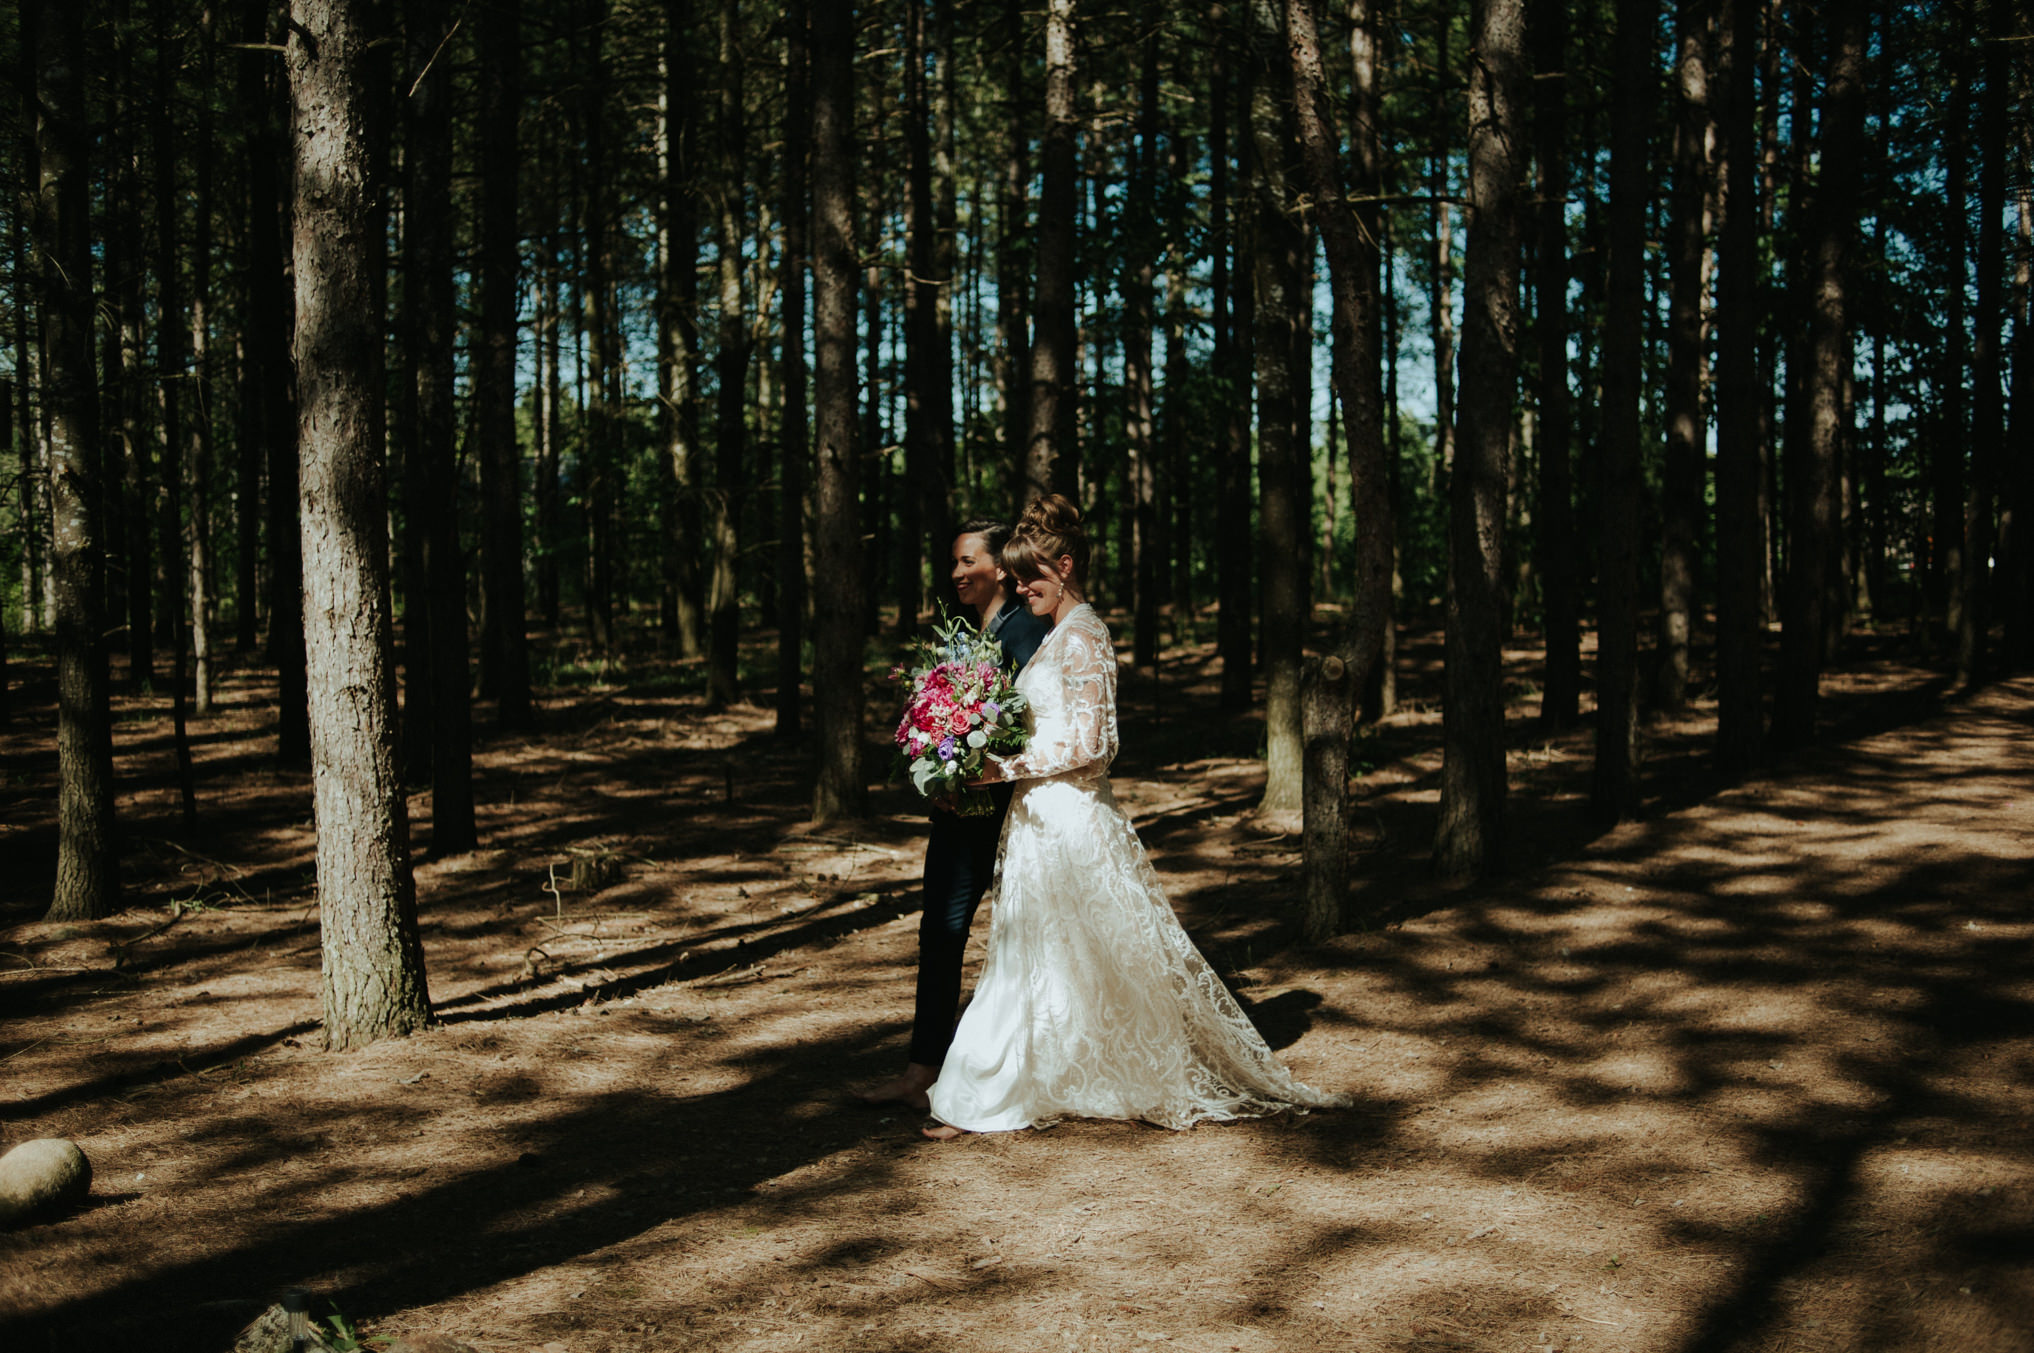 A dreamy femme babe same sex forest wedding at Riverstone Retreat // Daring Wanderer: www.daringwanderer.com